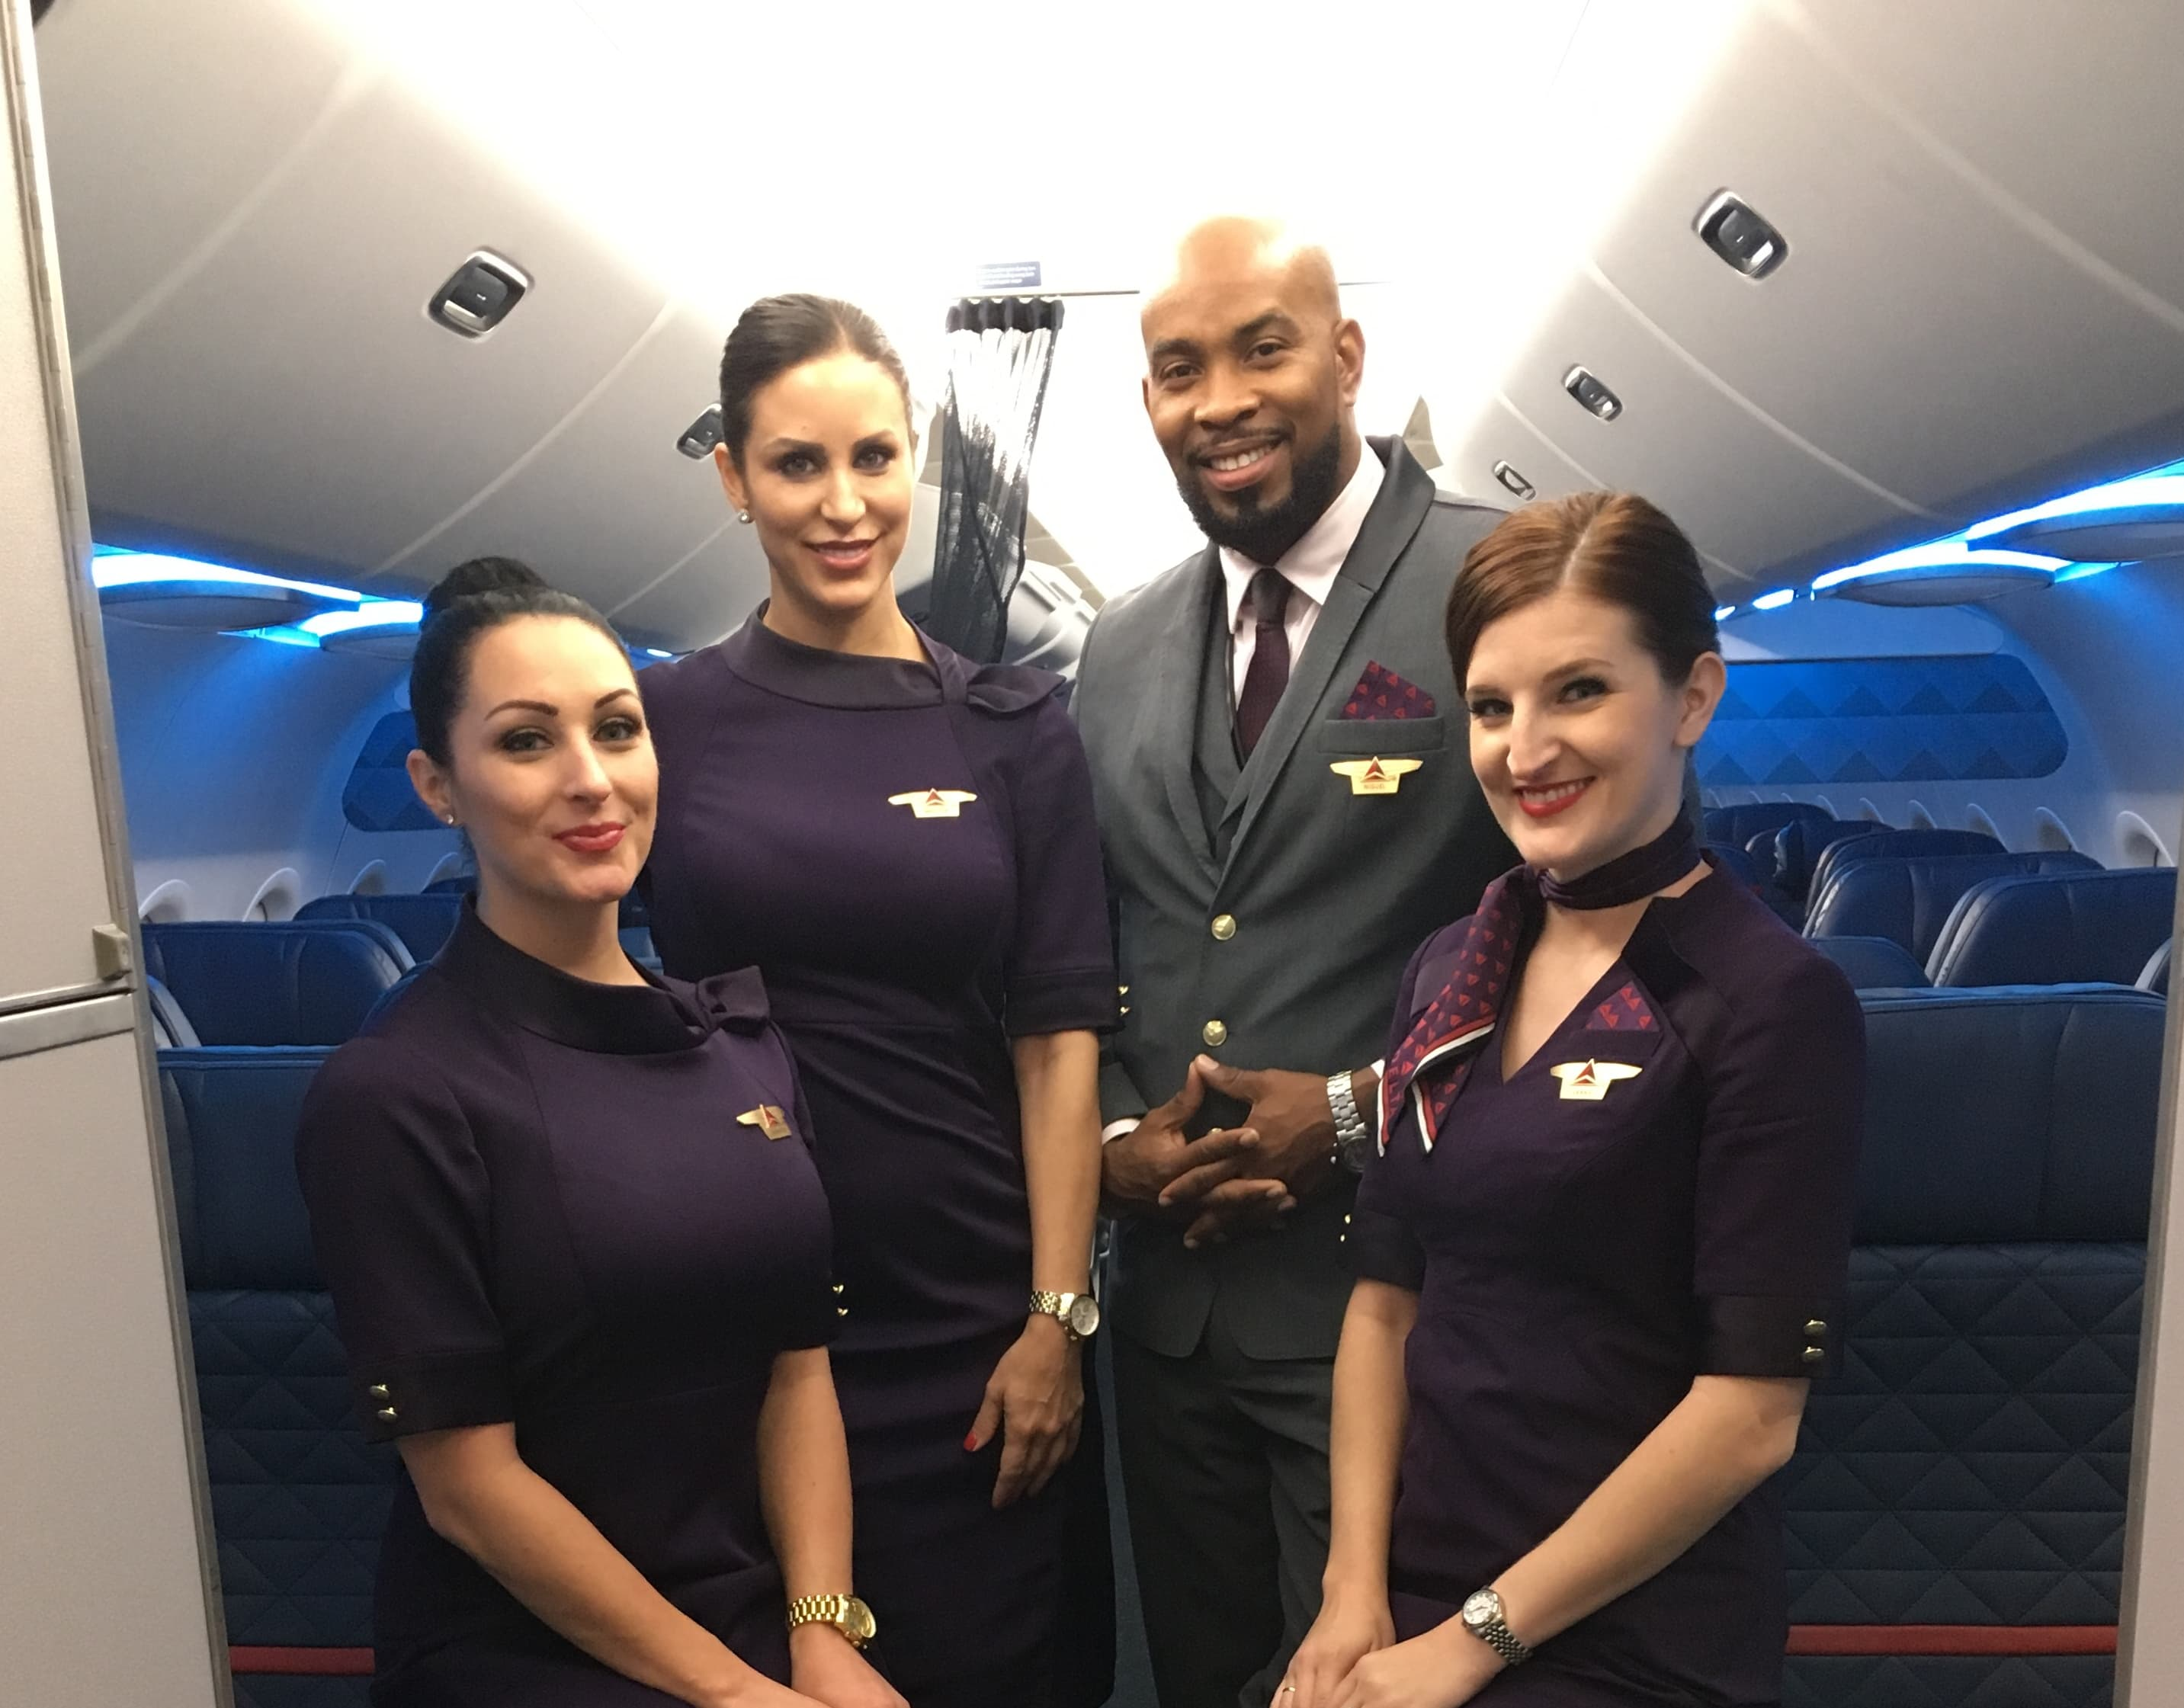 I shadowed a flight attendant—here's what it's like to lead